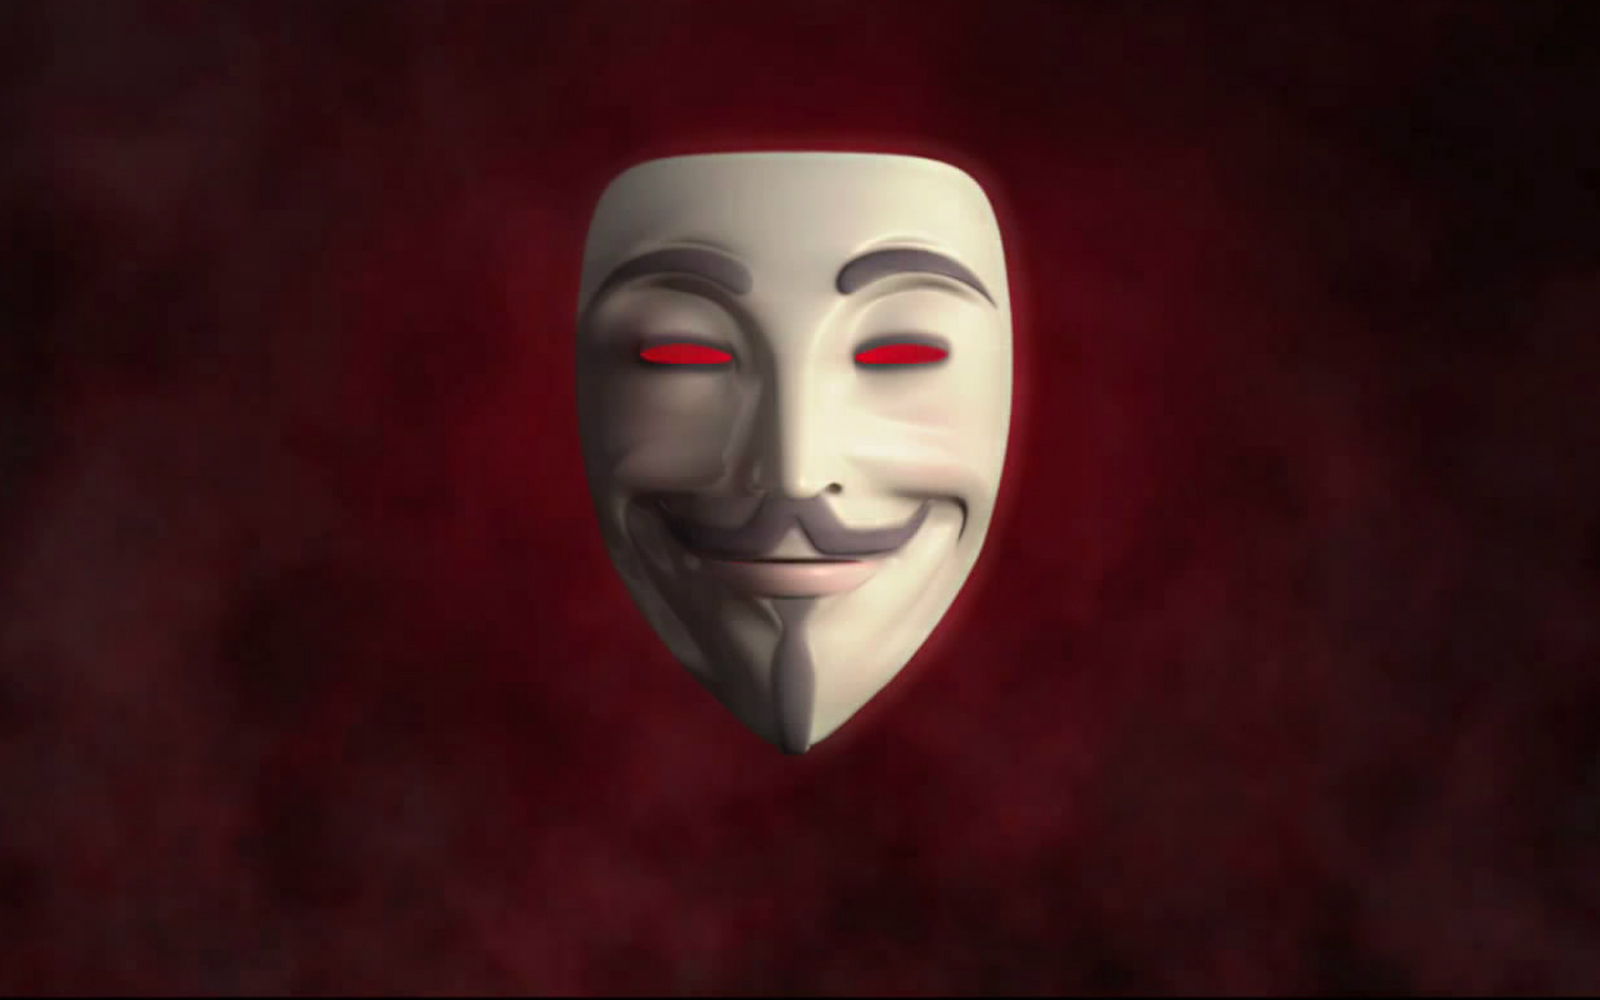 guy fawkes Timeline: how gunpowder plotters guy fawkes, robert catesby, thomas percy and others planned to blow up parliament on 5th november 1605.